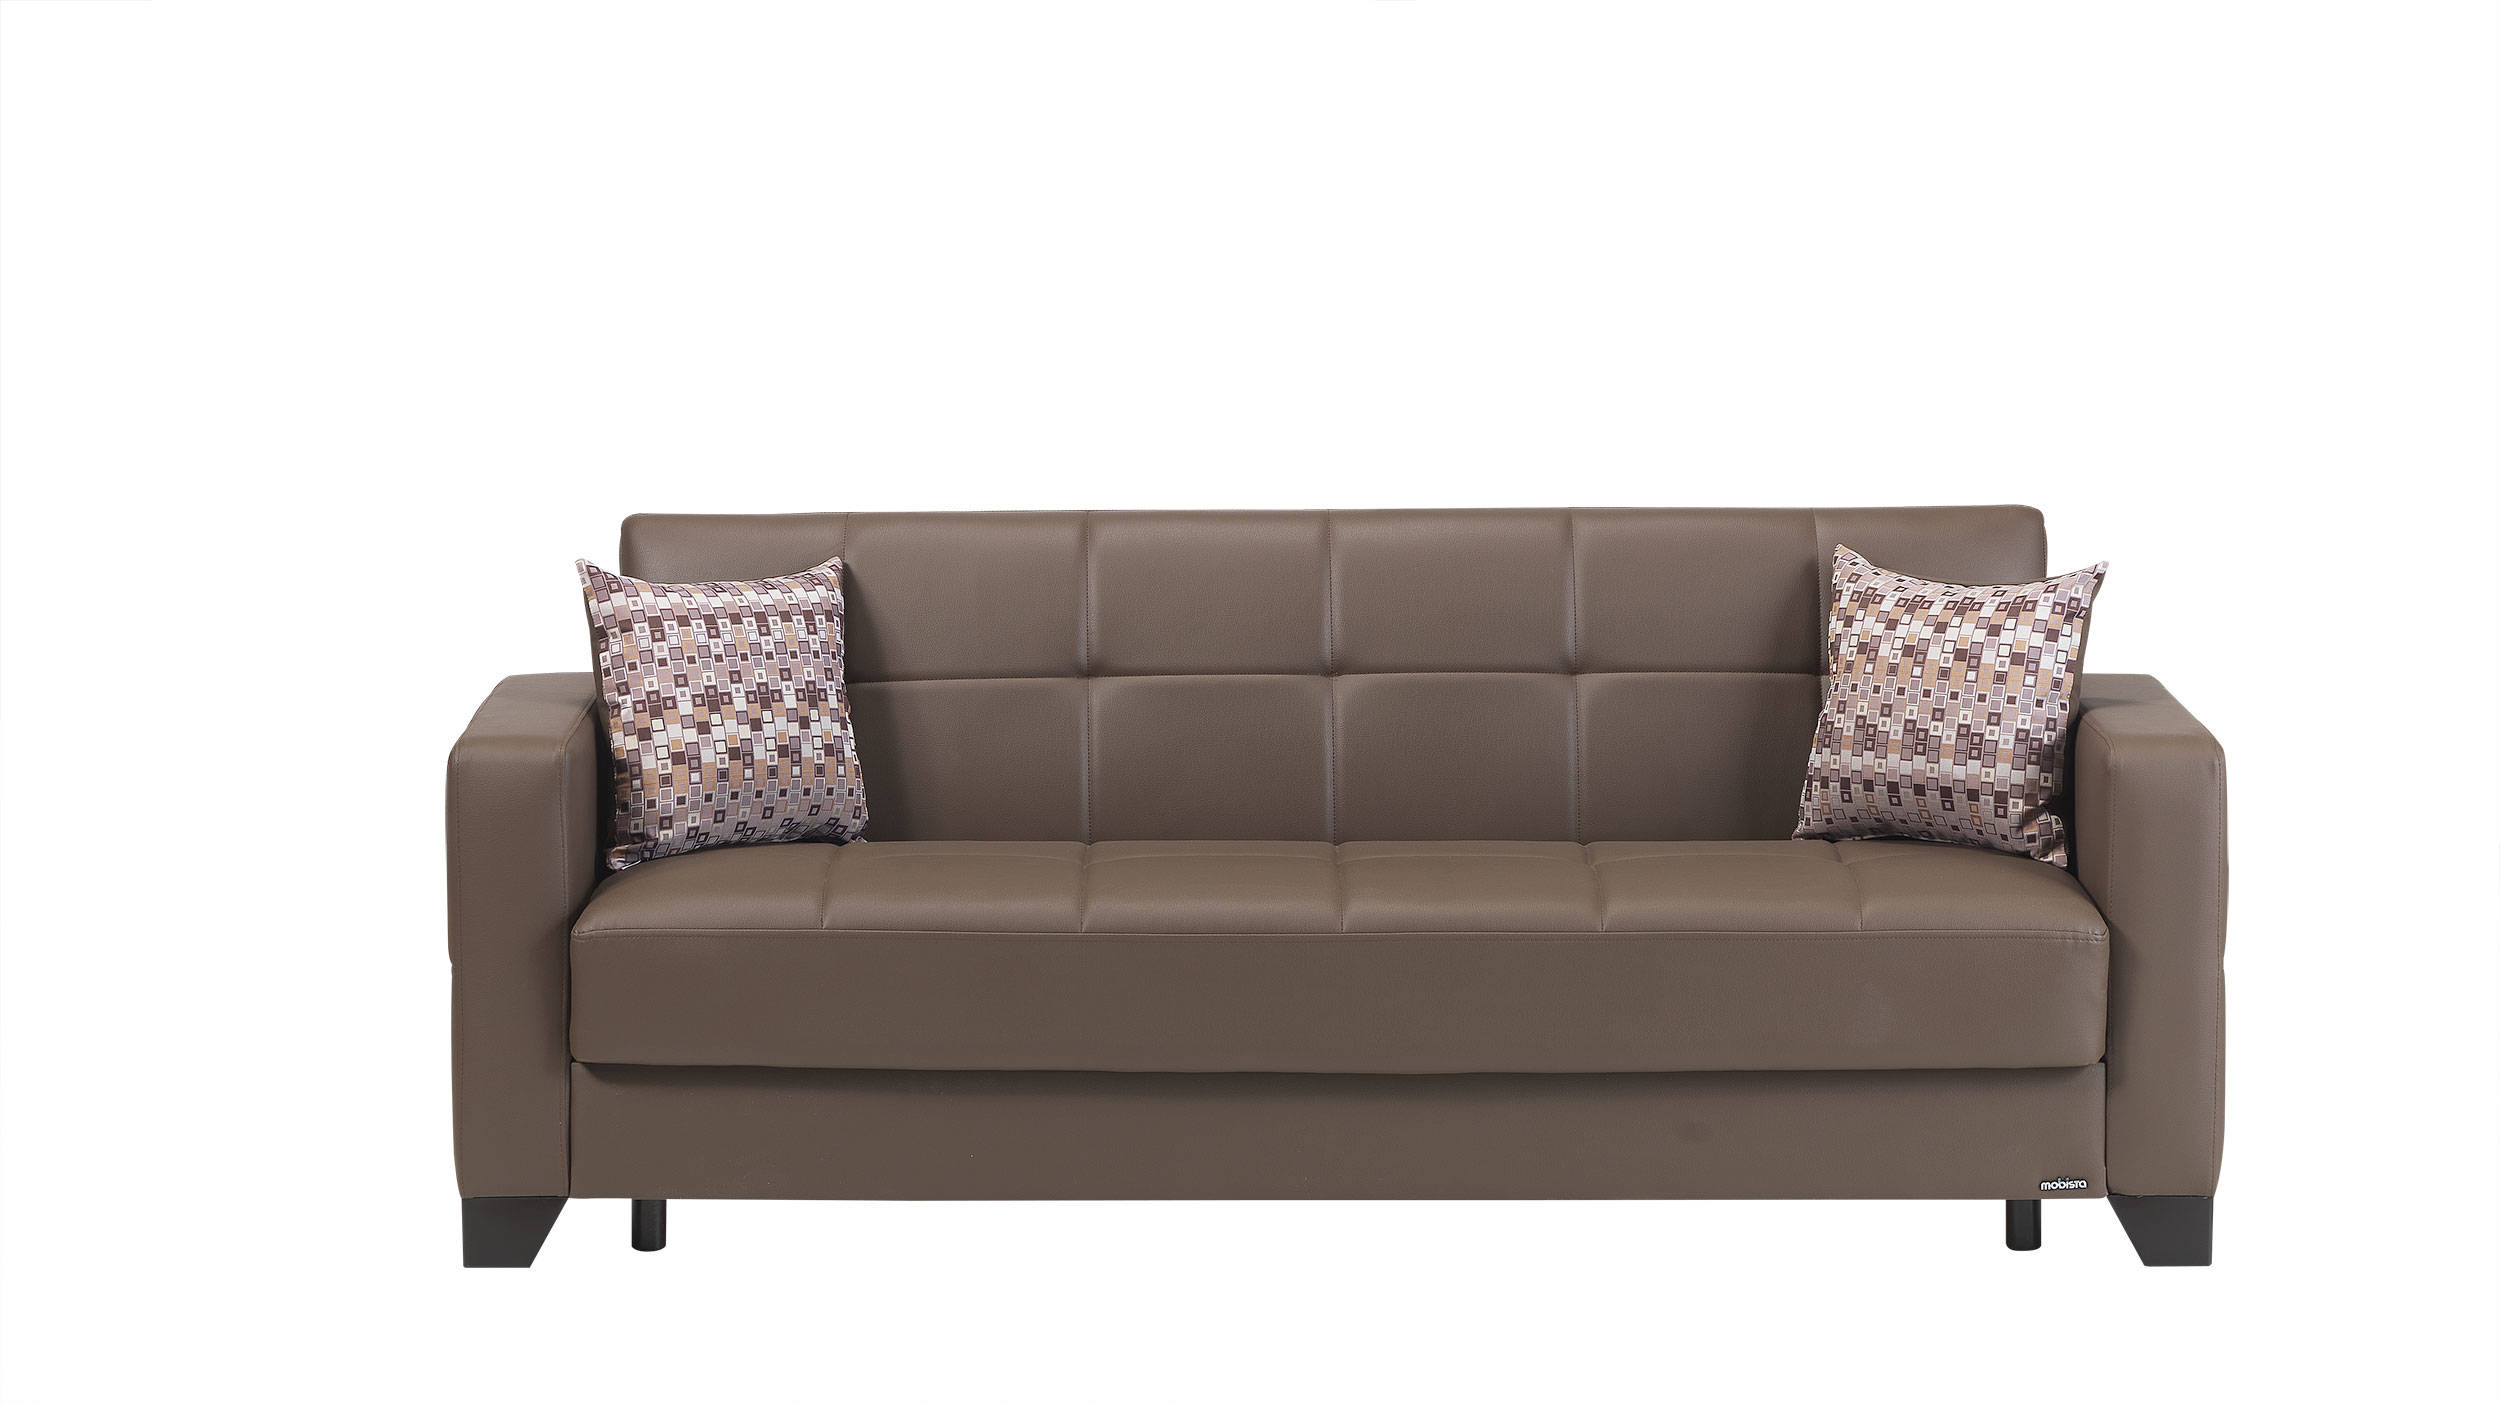 Viva Italia Prestige Brown Faux Leather MDF Plywood Sofa Bed